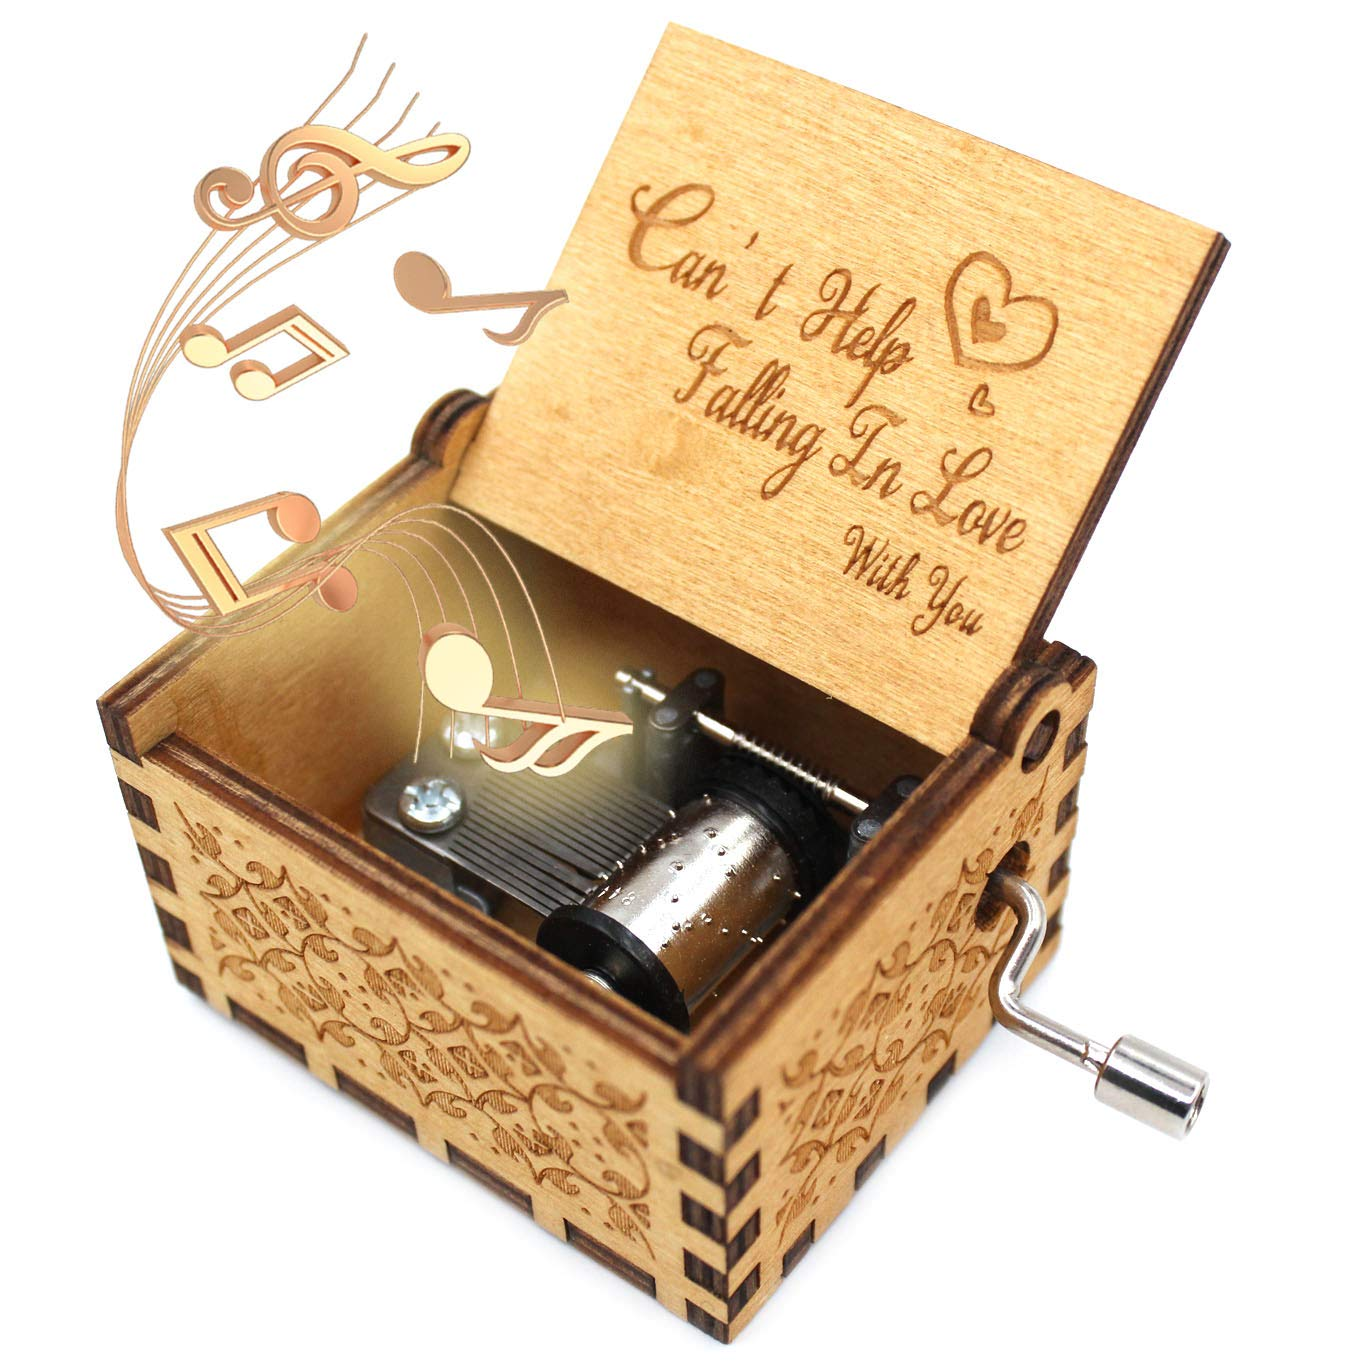 ukebobo Wooden Music Box - Can't Help Falling in Love Music Box,for The Lover Or Boyfriend, Birthday Gifts, 1 Set